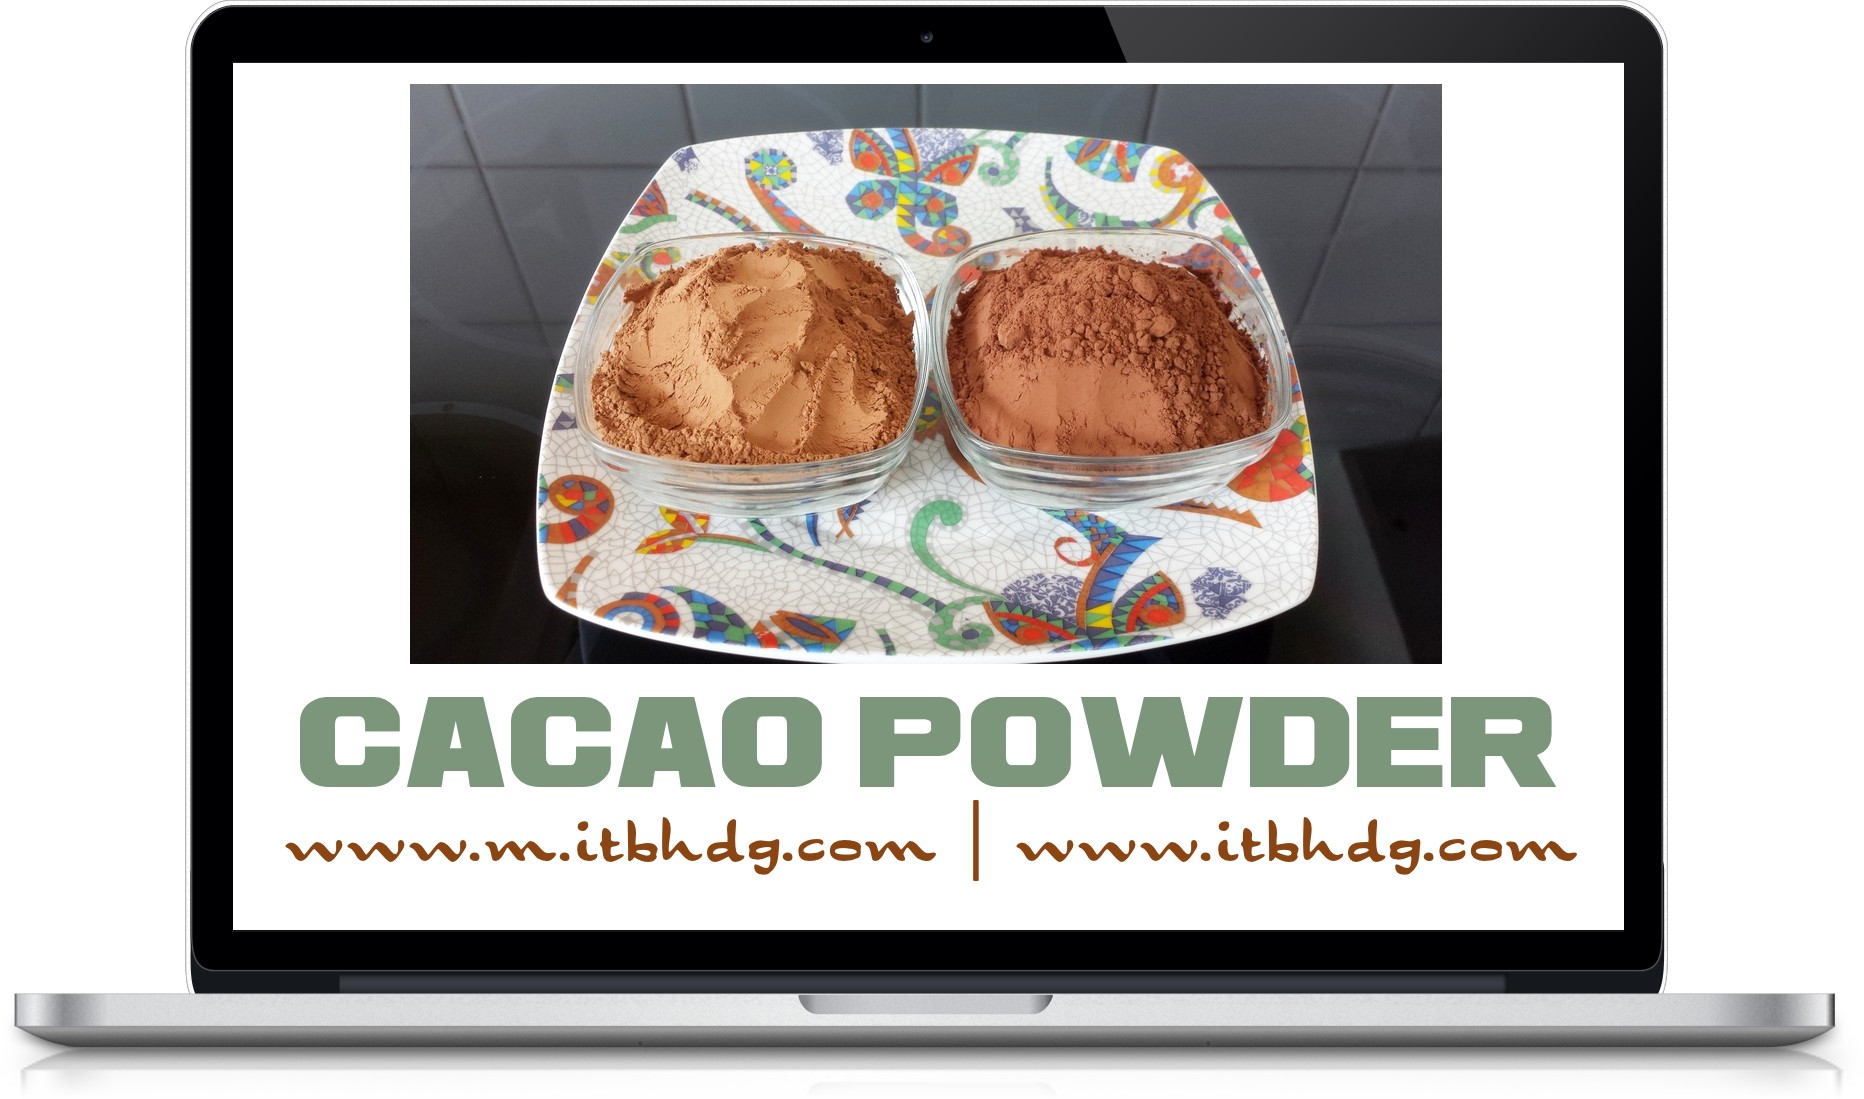 Organic Cacao Powder | Shop and Save up to 35% today | www.m.itbhdg.com | www.itbhdg.com